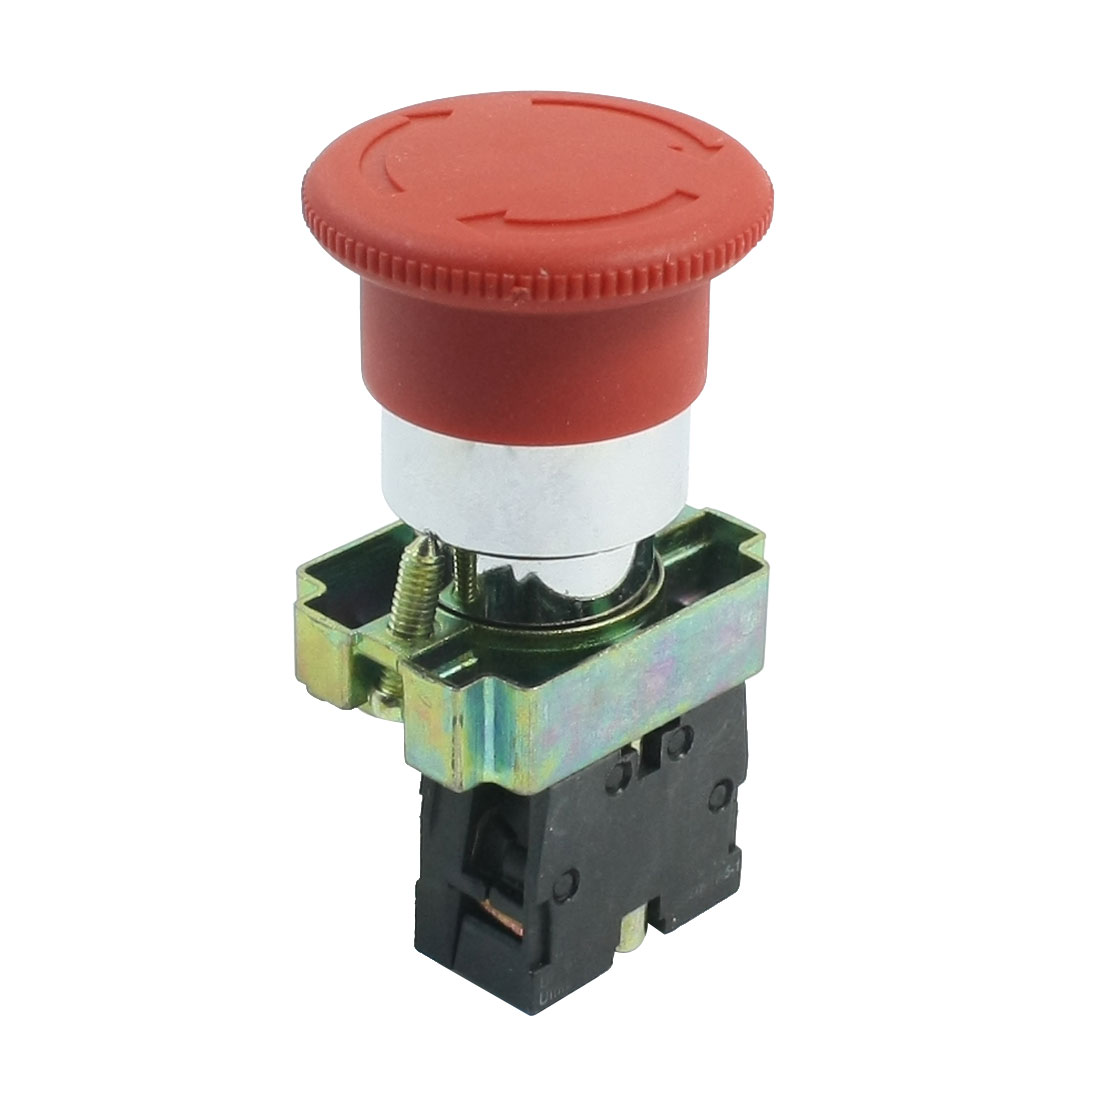 AC 240V 3A SPST 1NC Power Control Self-Locking Mushroom Pushbutton Switch